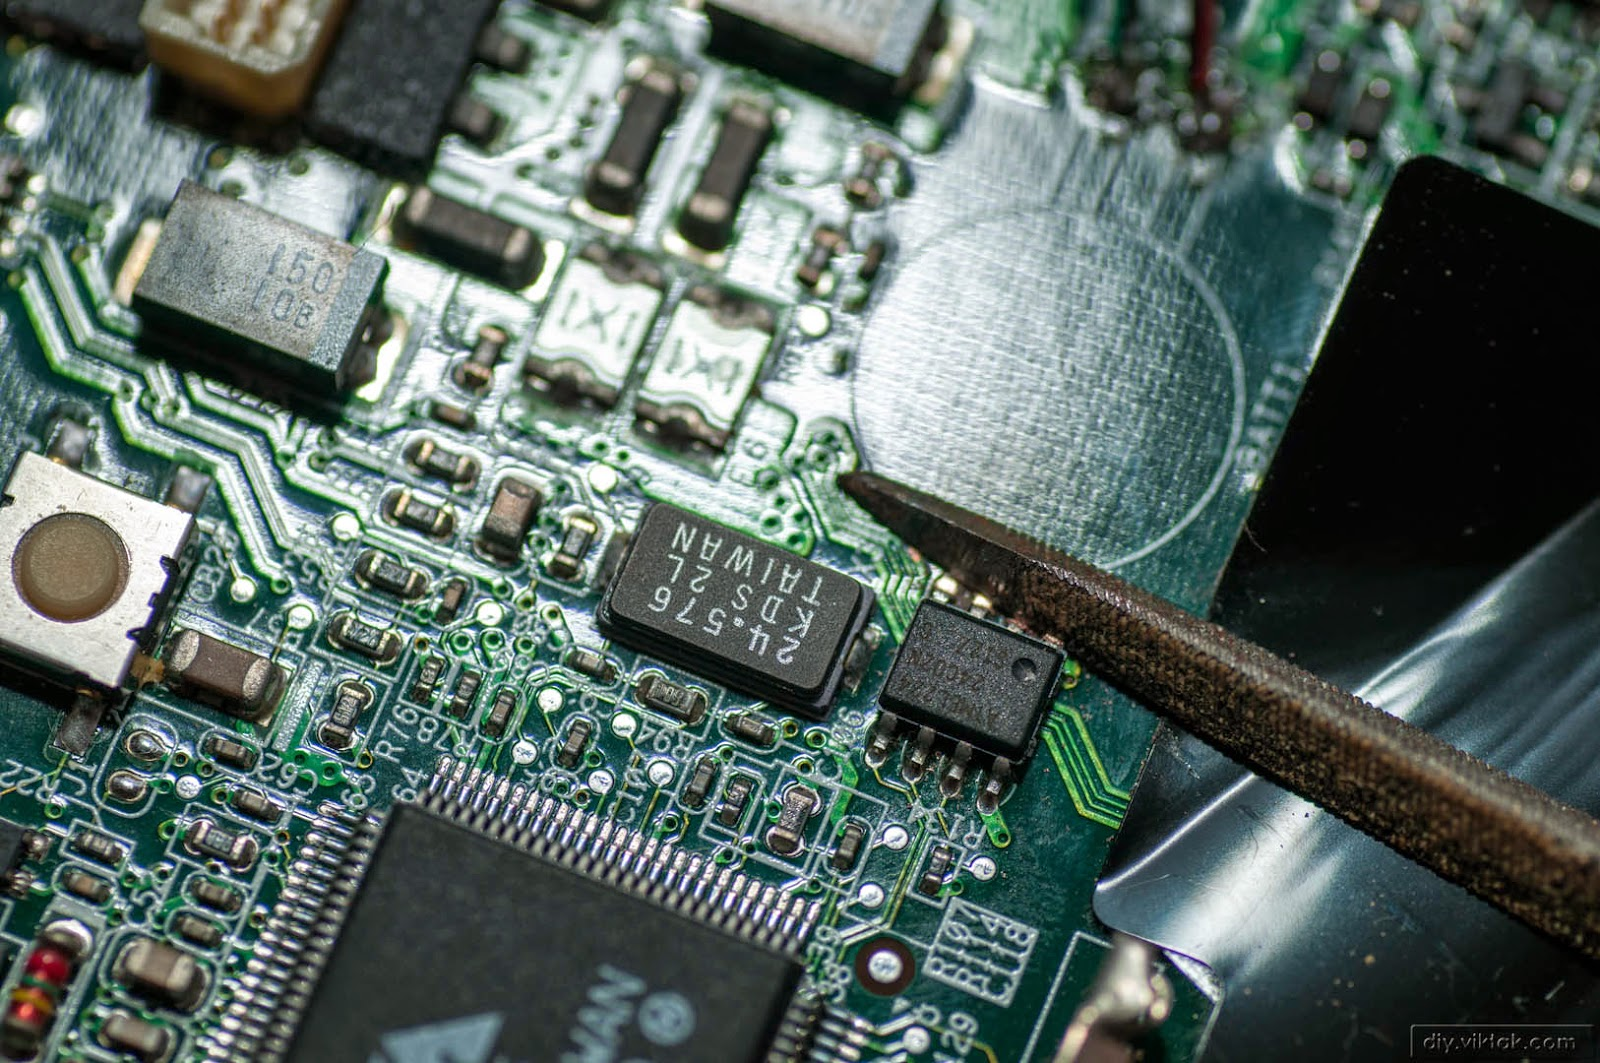 Viktor's DIY: How to Recover a Laptop After a Failed BIOS Update